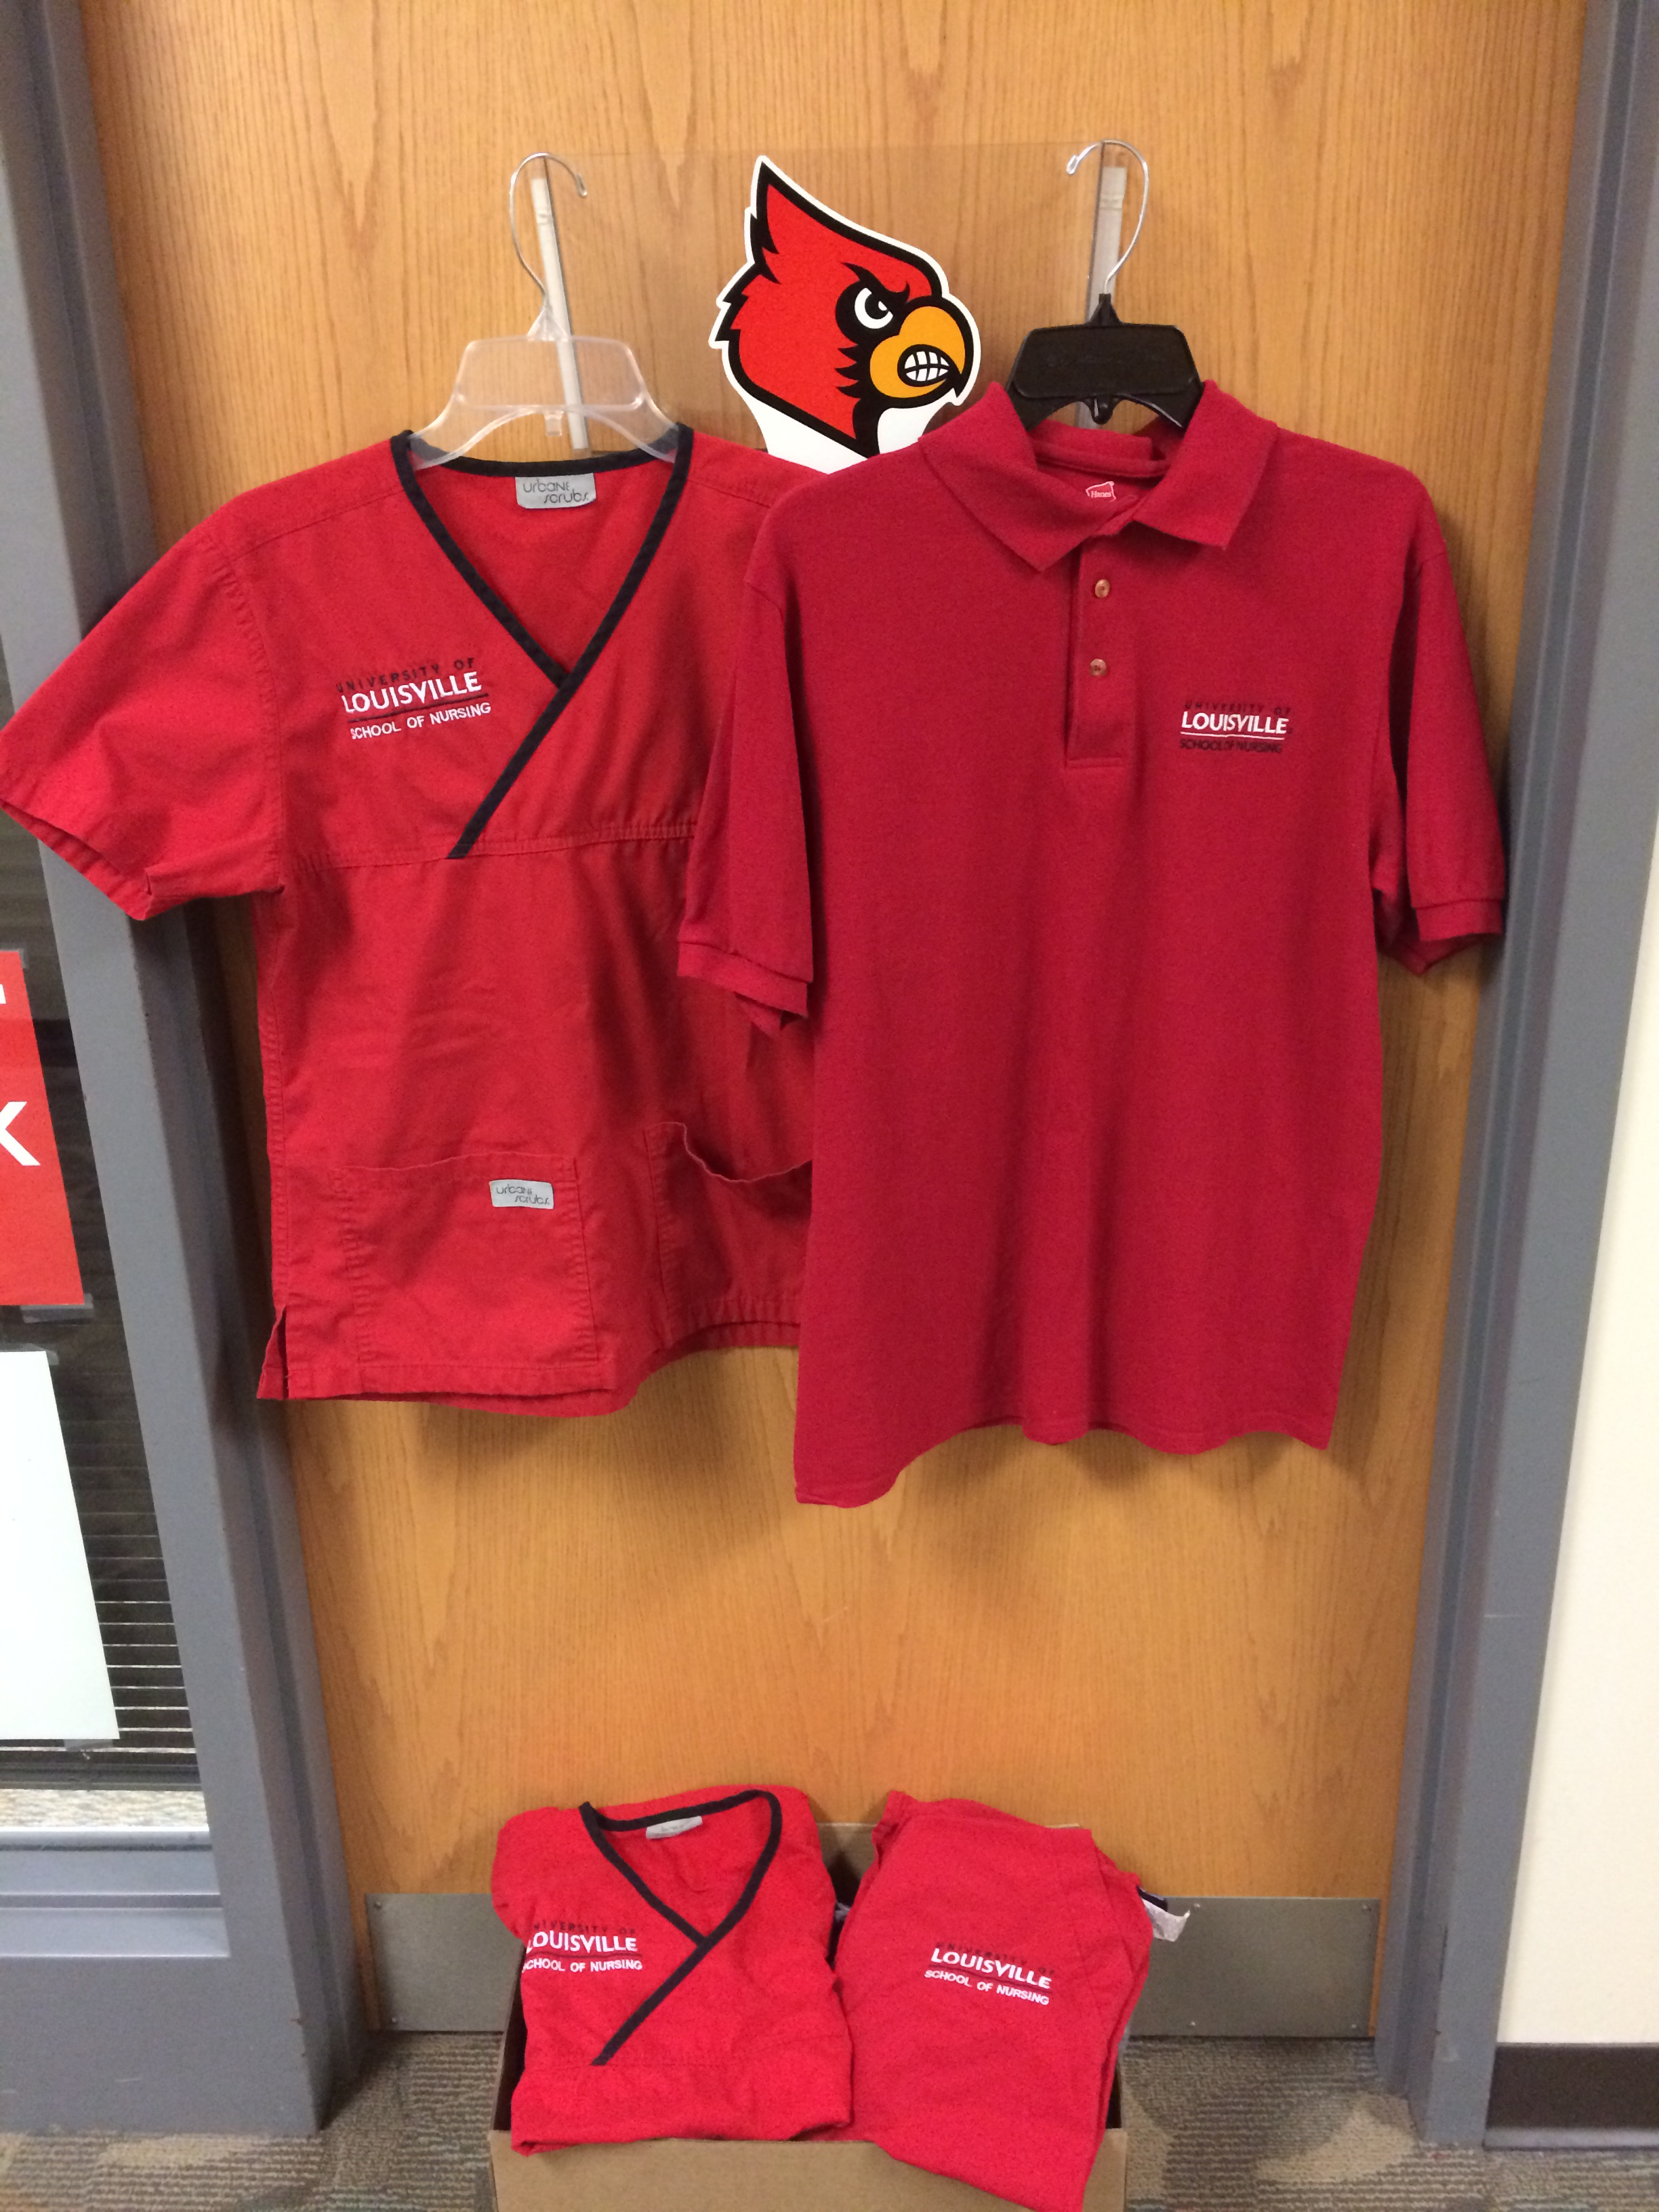 Alumni asked to donate used scrubs and polos to students